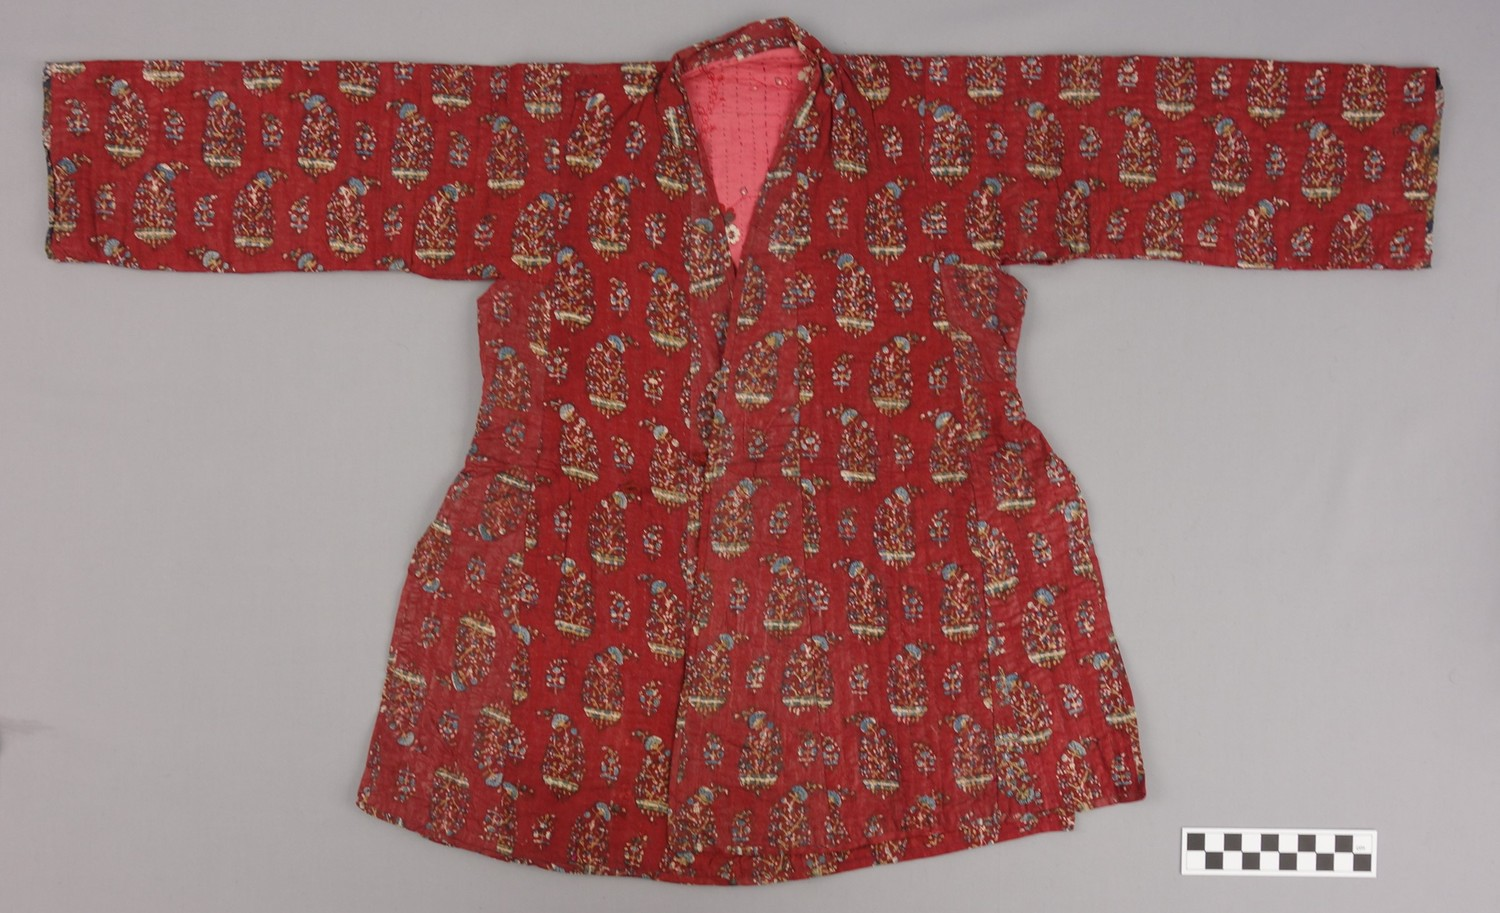 Quilted child's coat from Iran, 19th century (TRC 1997.0285).